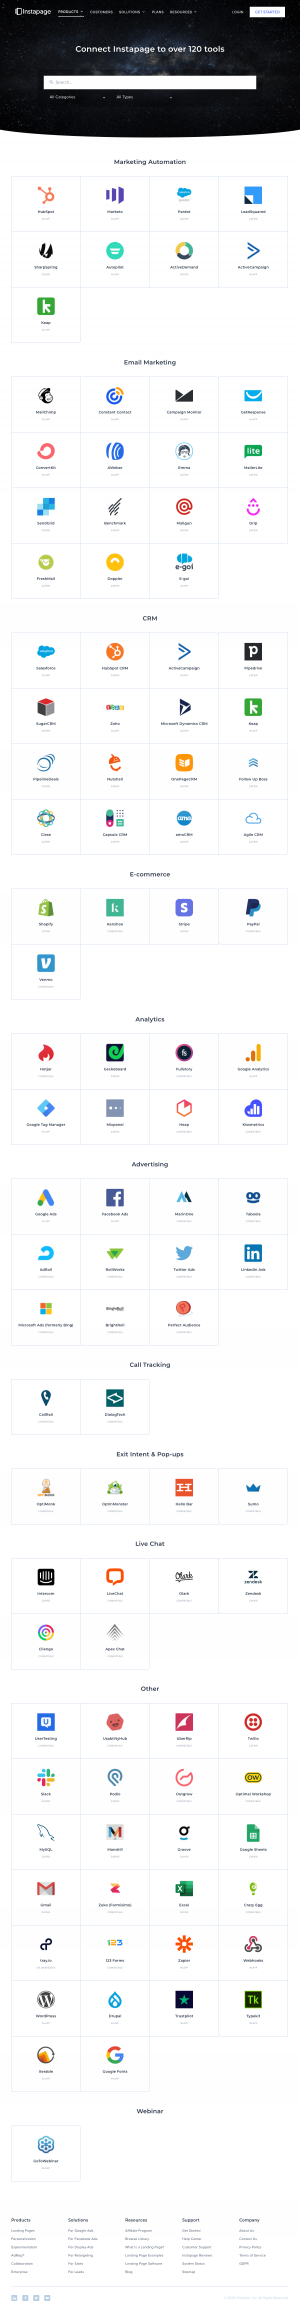 Instapage – Integrations page